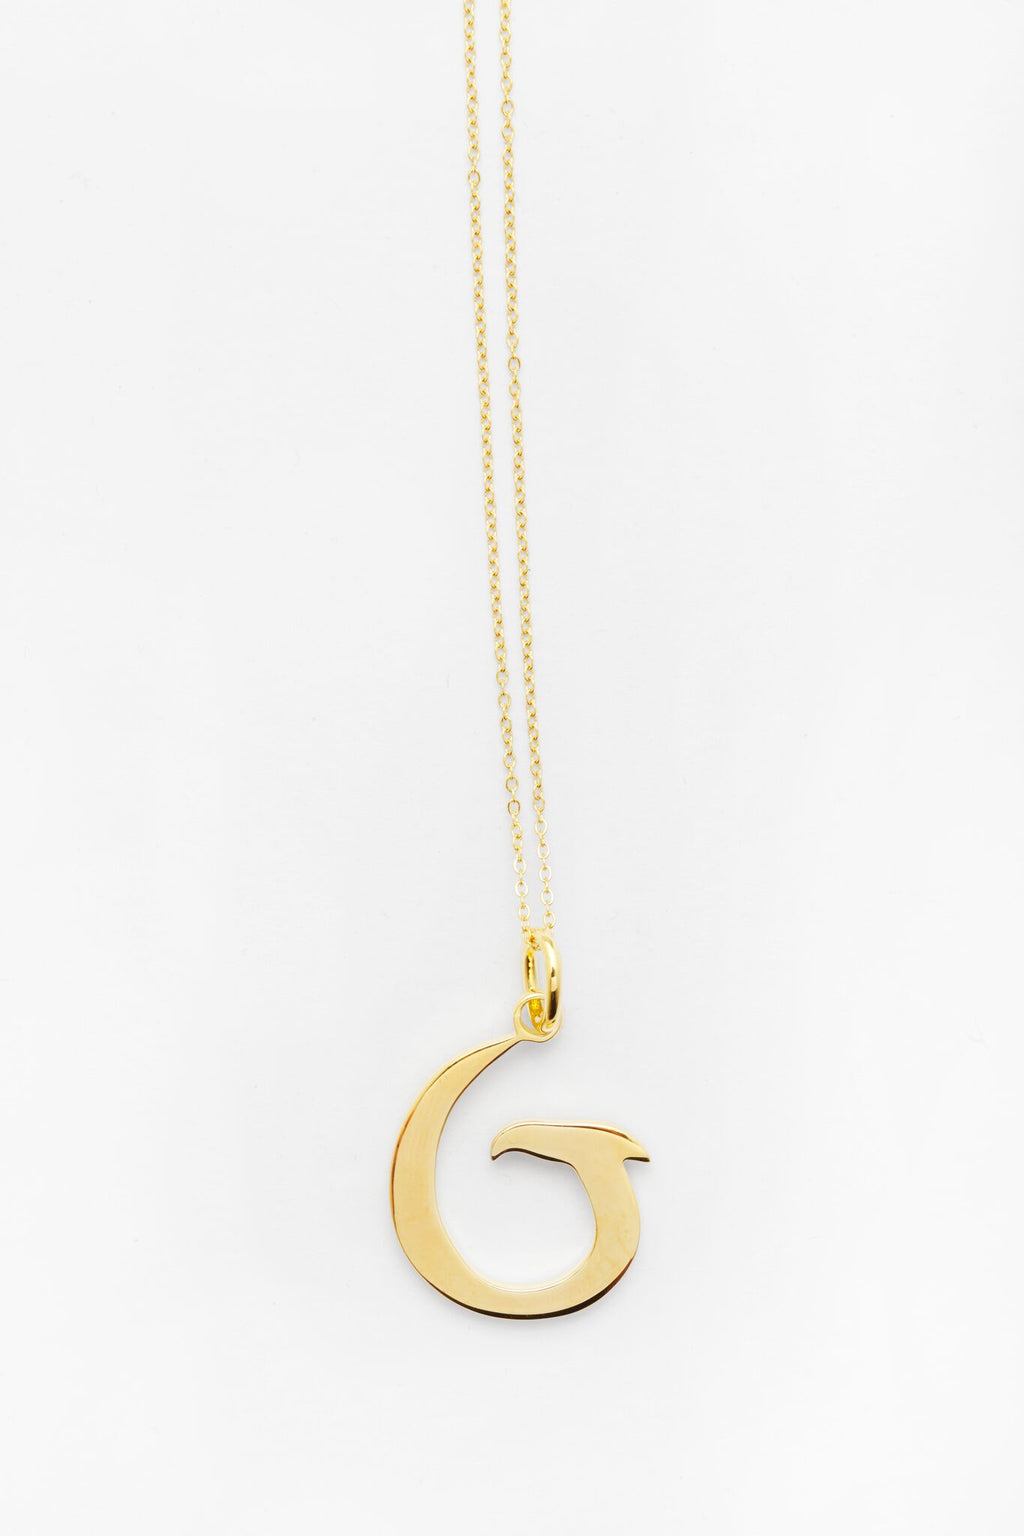 Gold Letter G Necklace